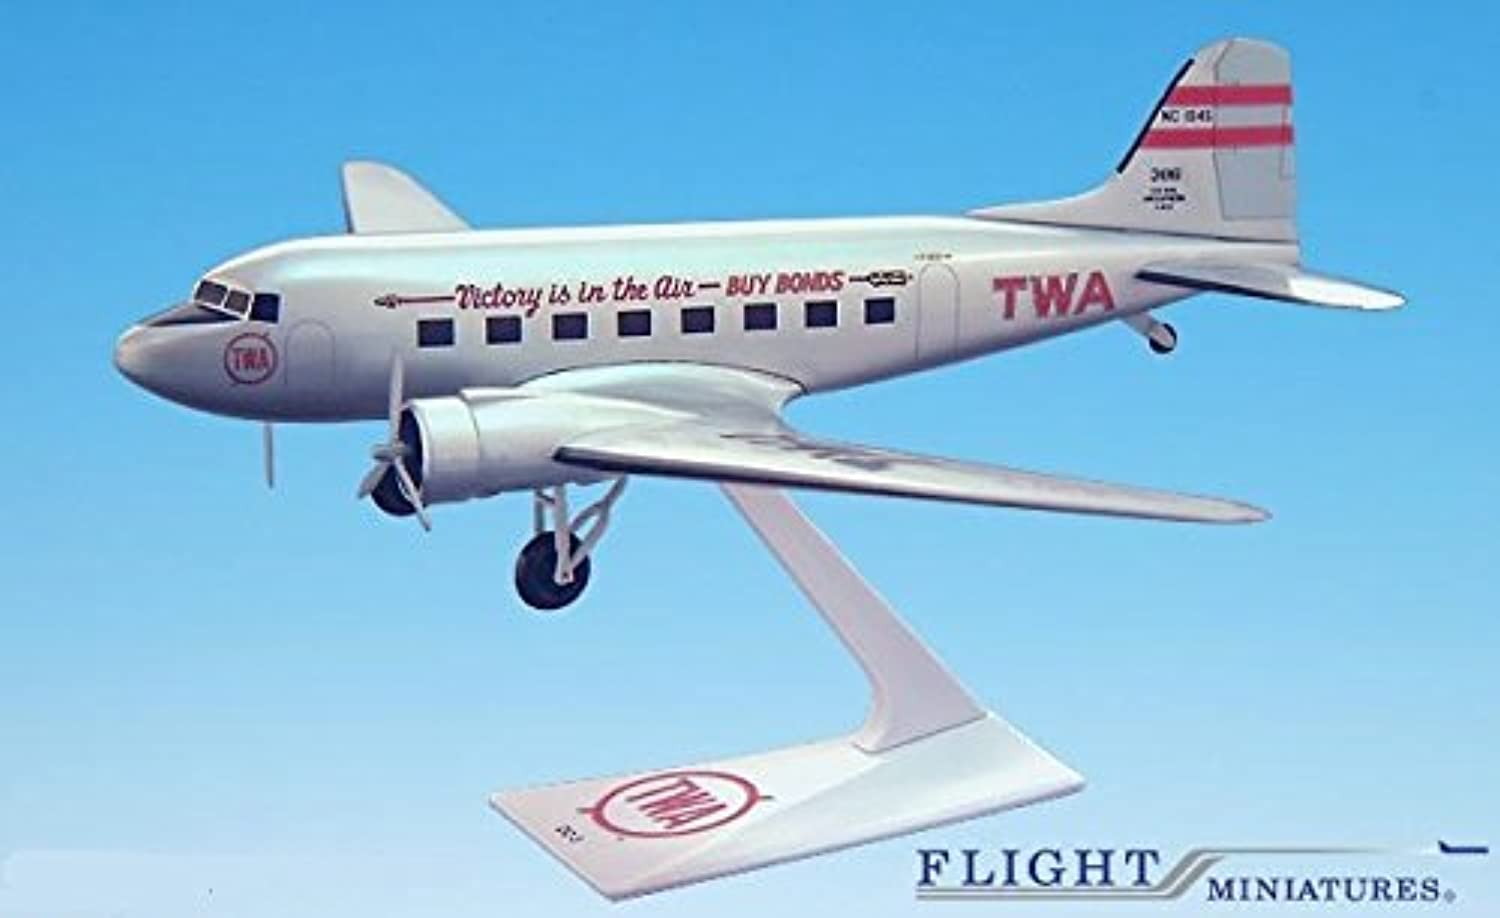 TWA Victory is in the Air DC3 Airplane Miniature Model Plastic Snap Fit 1 100 Part  ADC00300C007